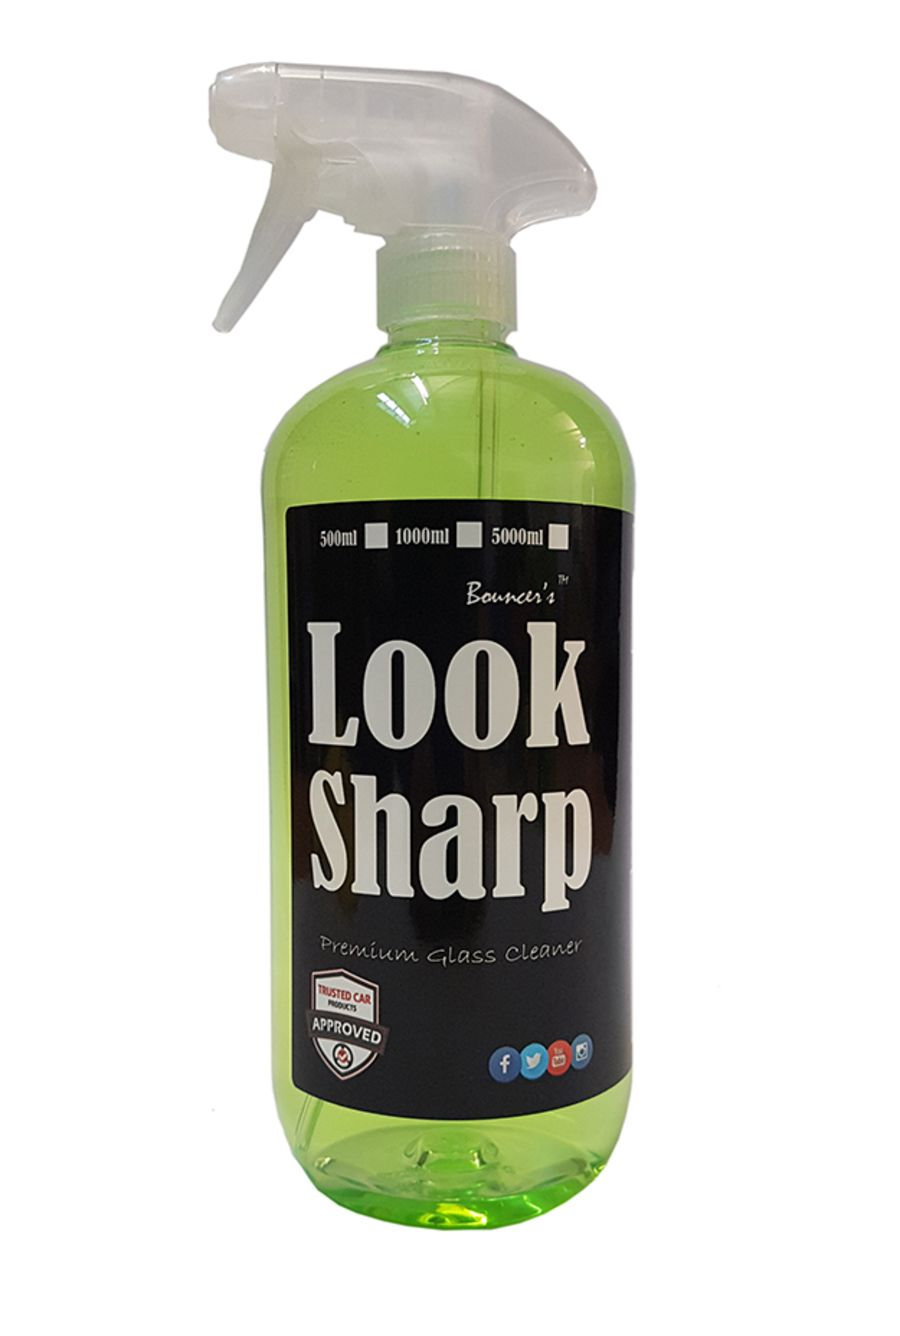 Bouncer's Look Sharp 1000ml